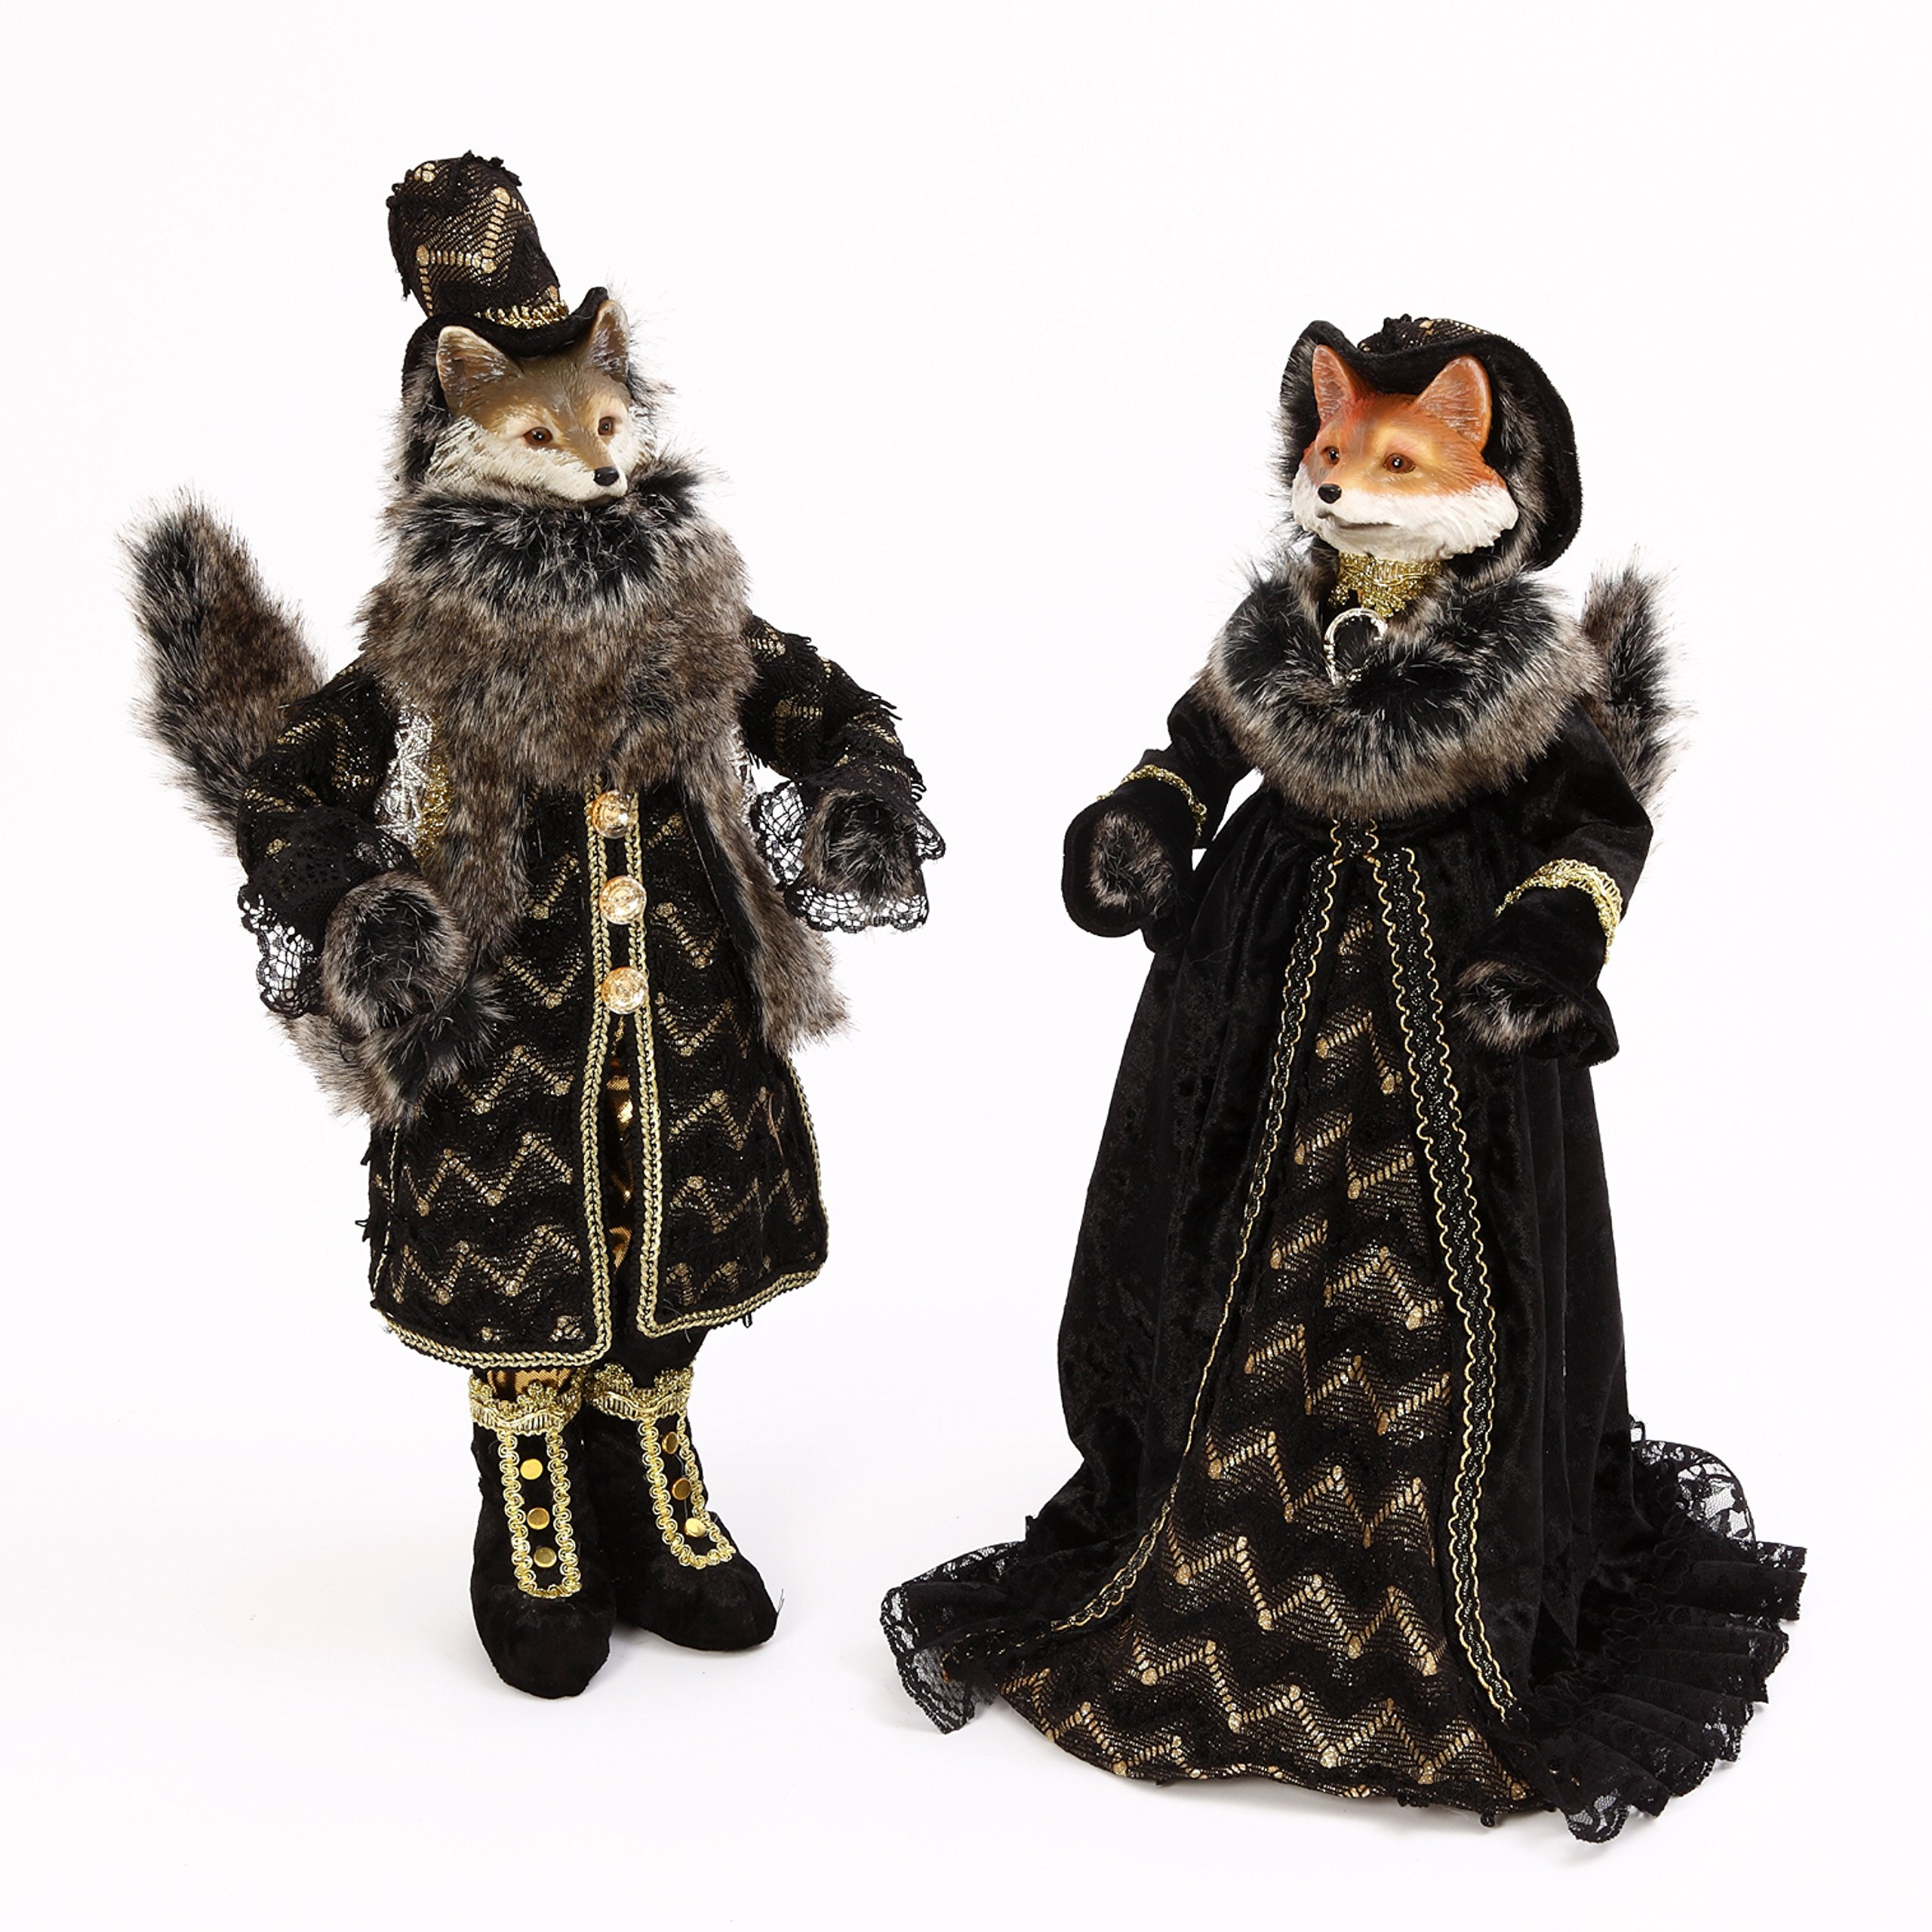 Halloween Masquerade Fox Doll Figurines Set of 2 New 18'' Tall Adorable animals by Gerson International (Image #1)